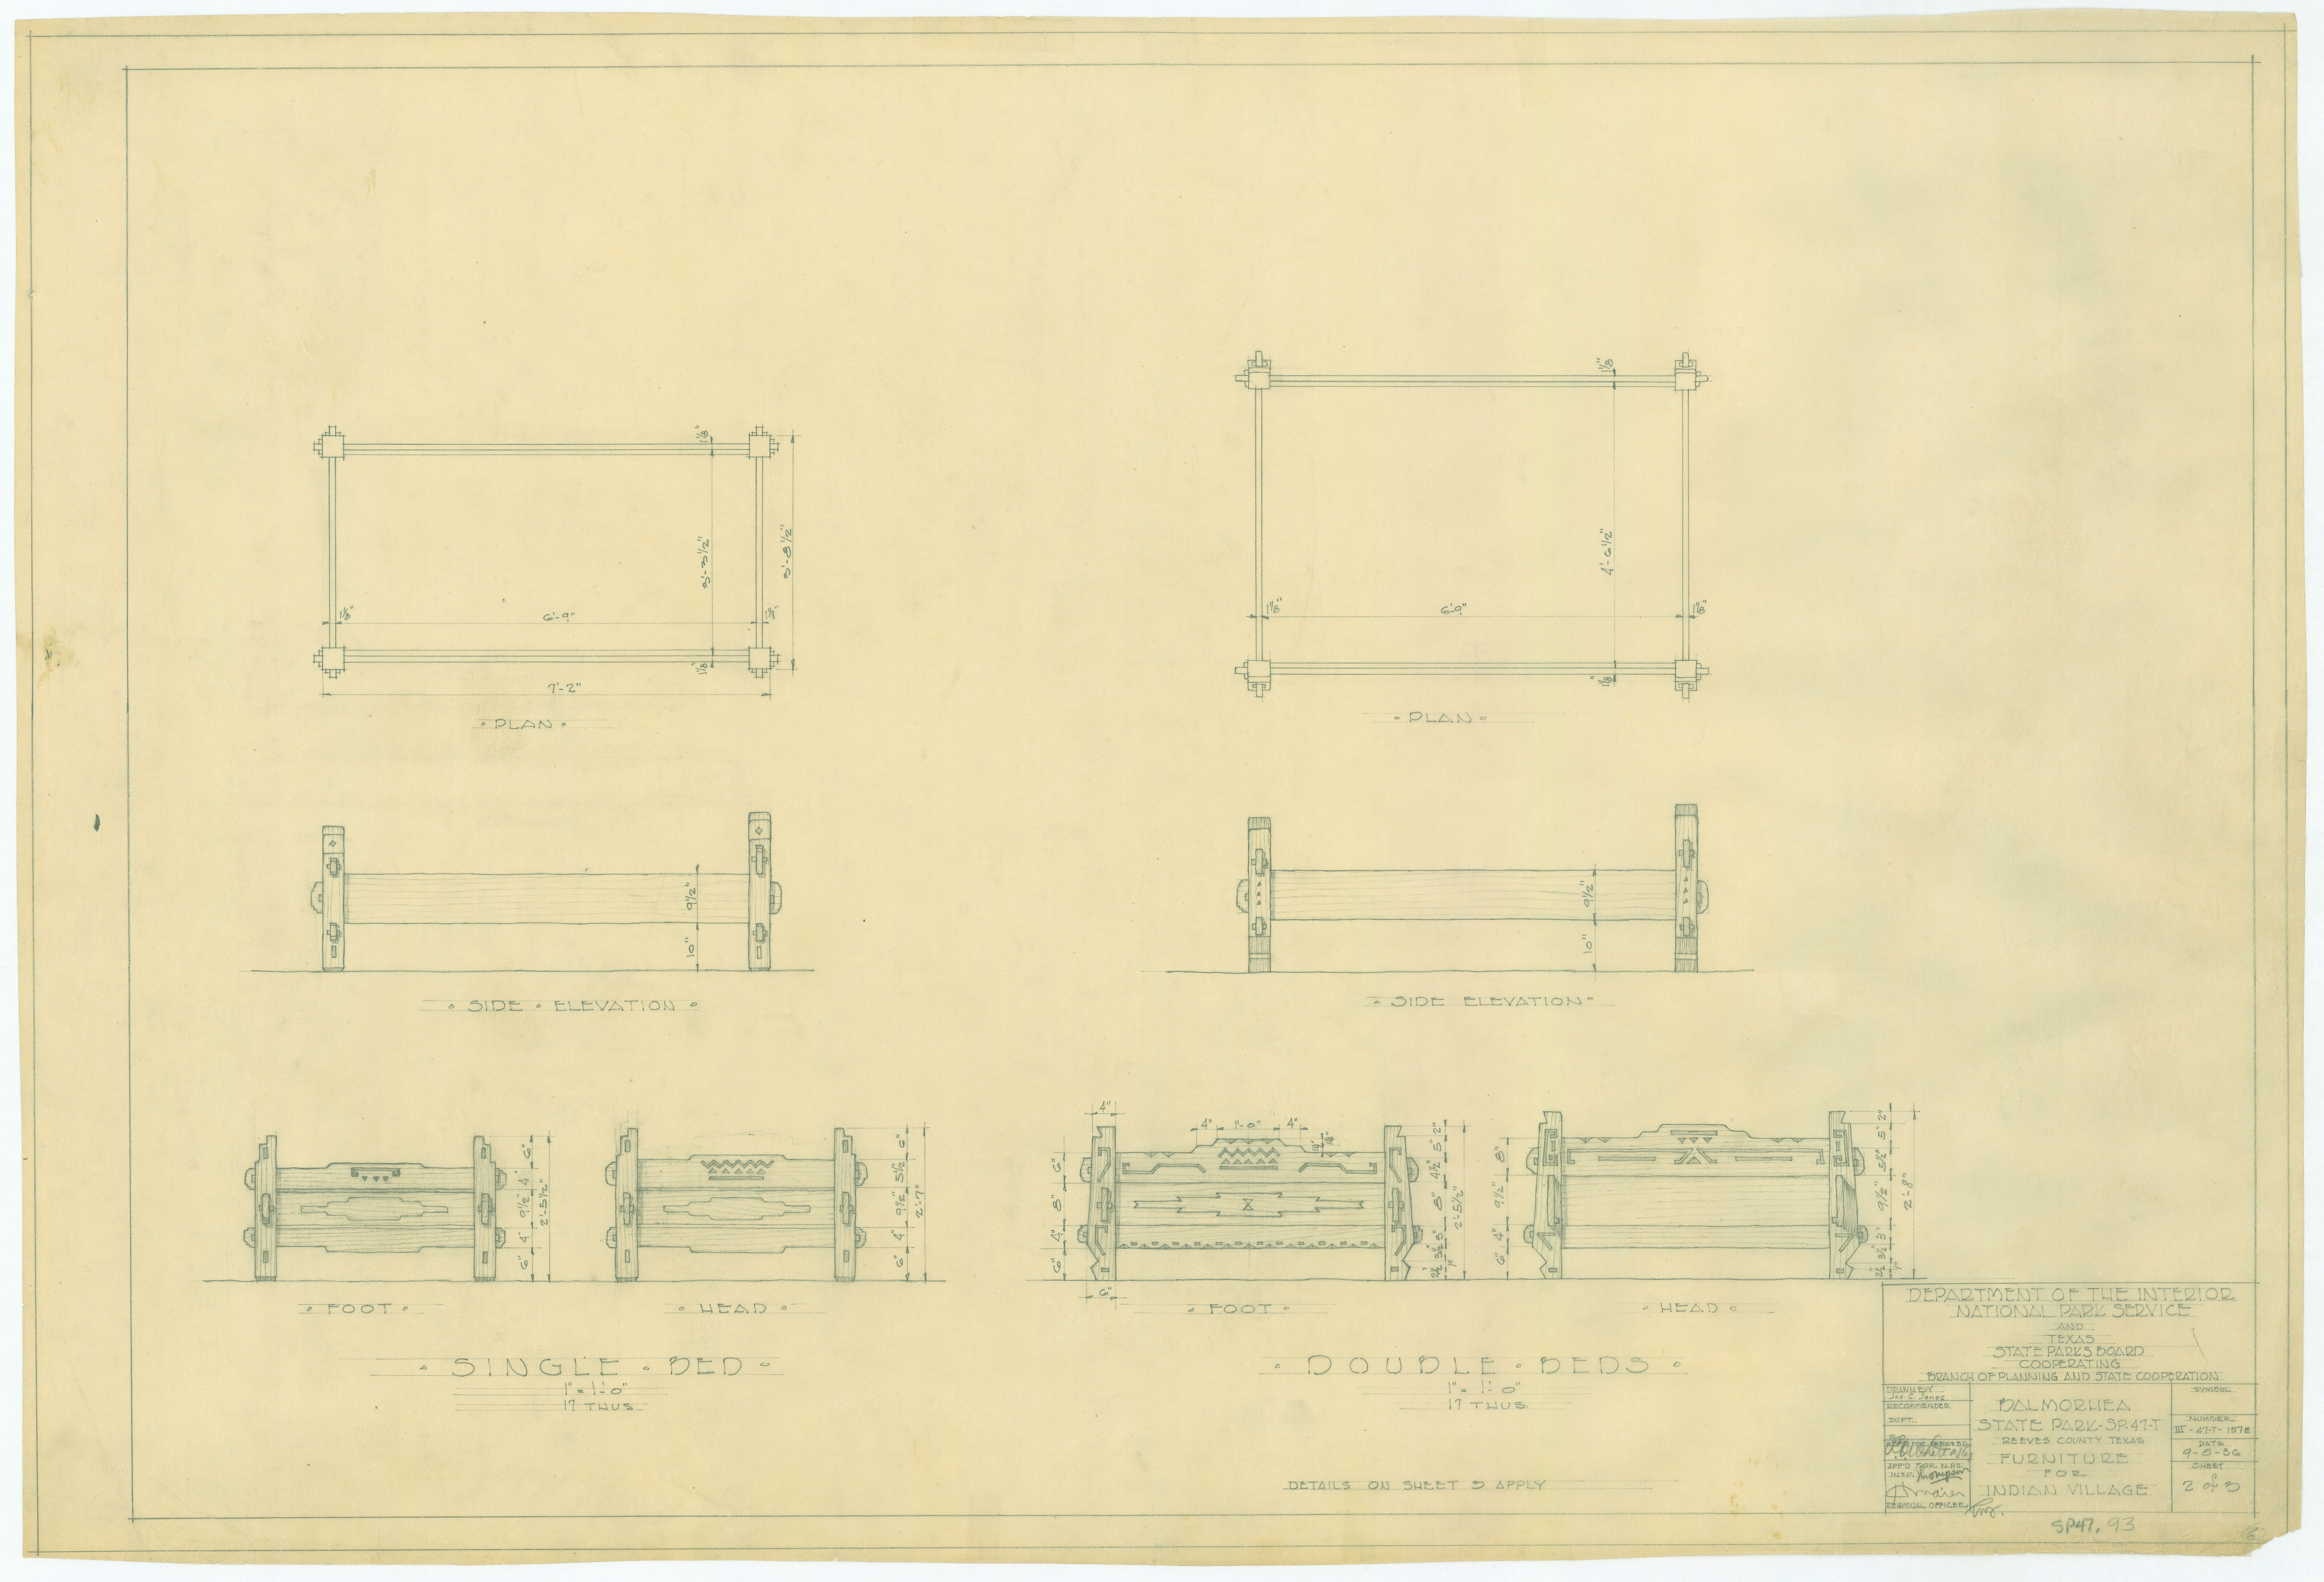 Balmorhea State Park - Furniture for Indian Village (Single and Double Beds) - SP47-93